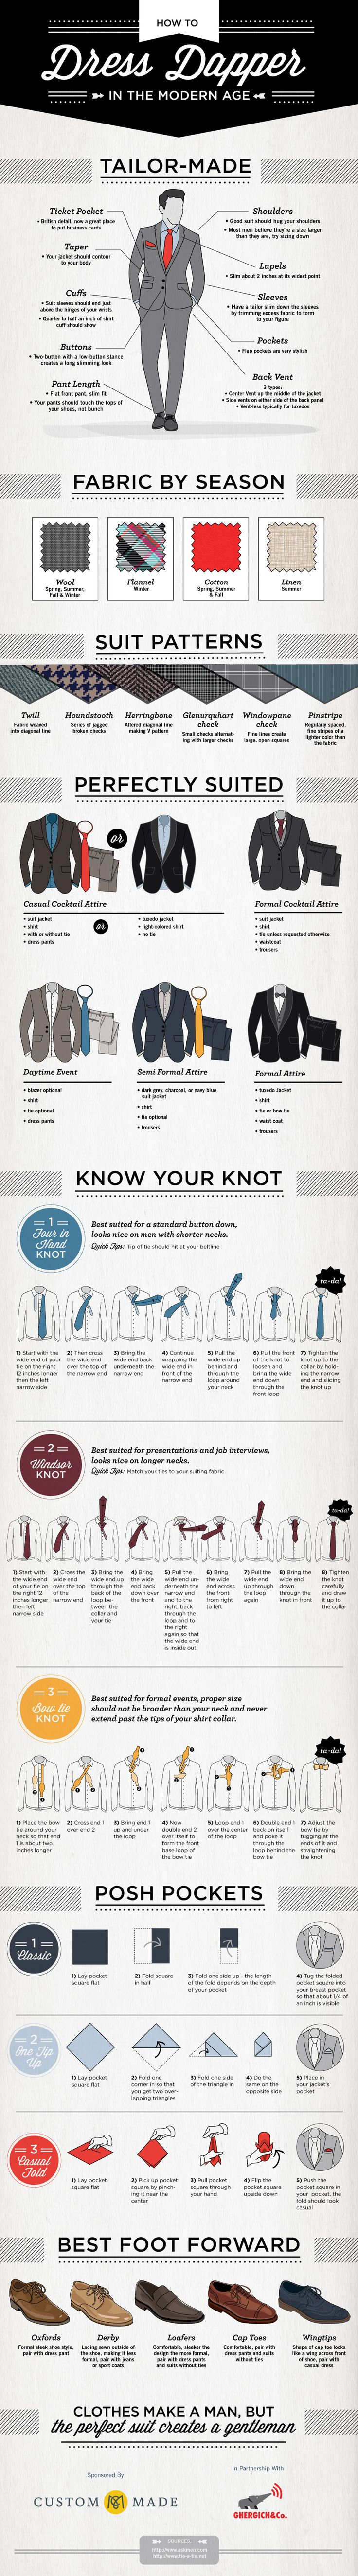 How To Dress Dapper In The Modern Age - Infographic #infographic #menstyle